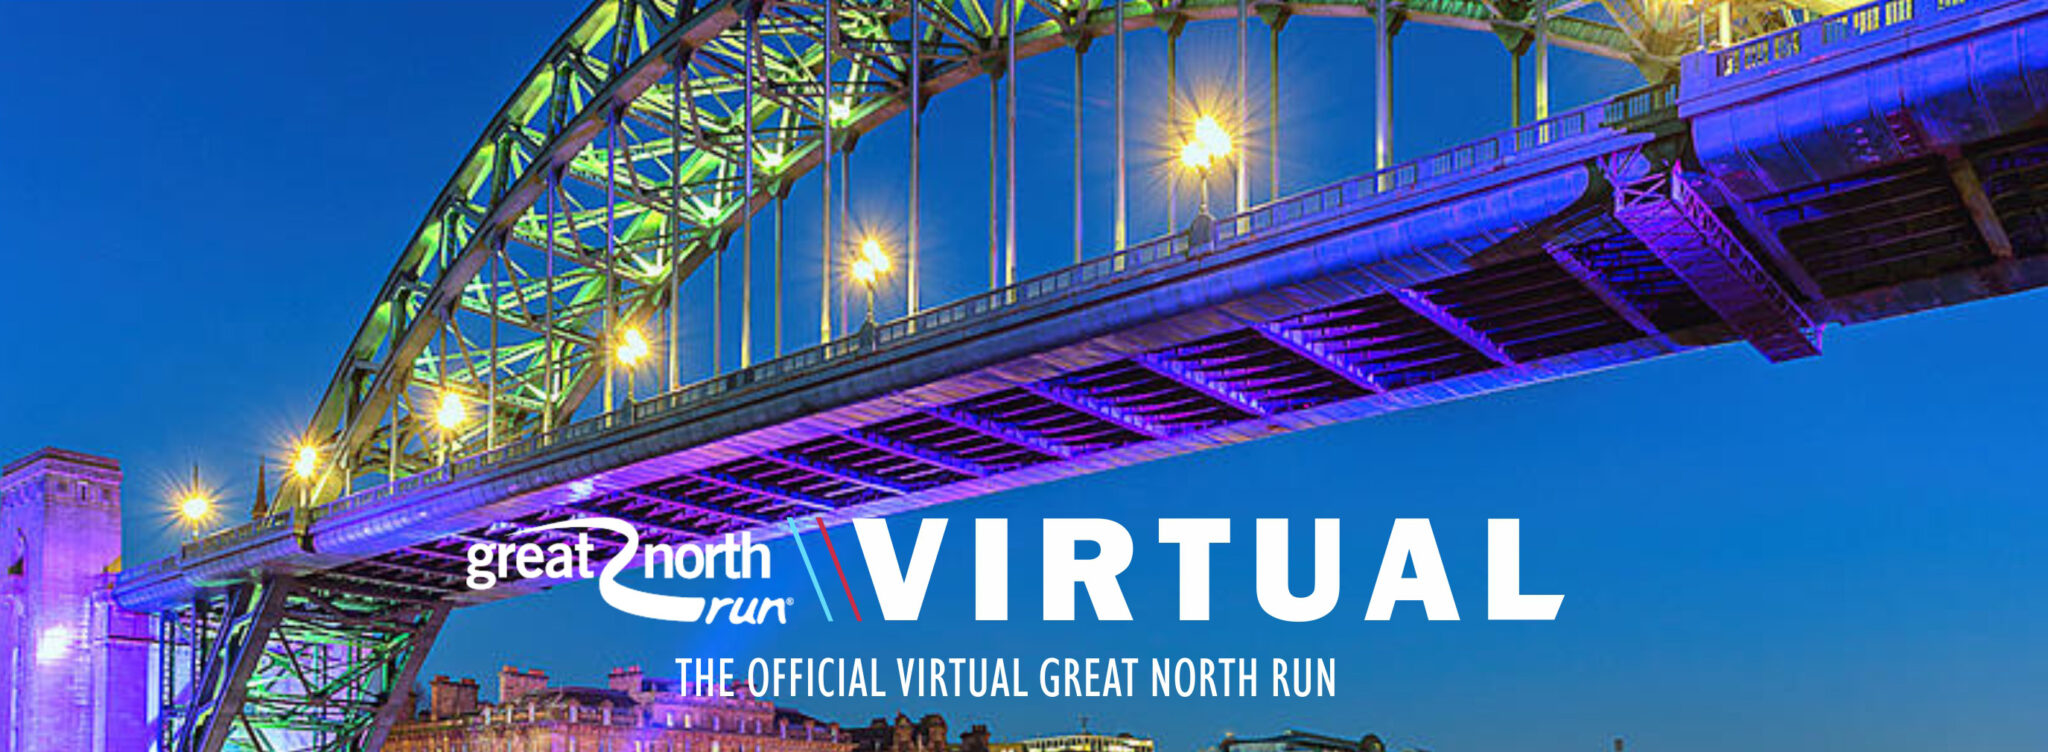 The Official Virtual Great North Run